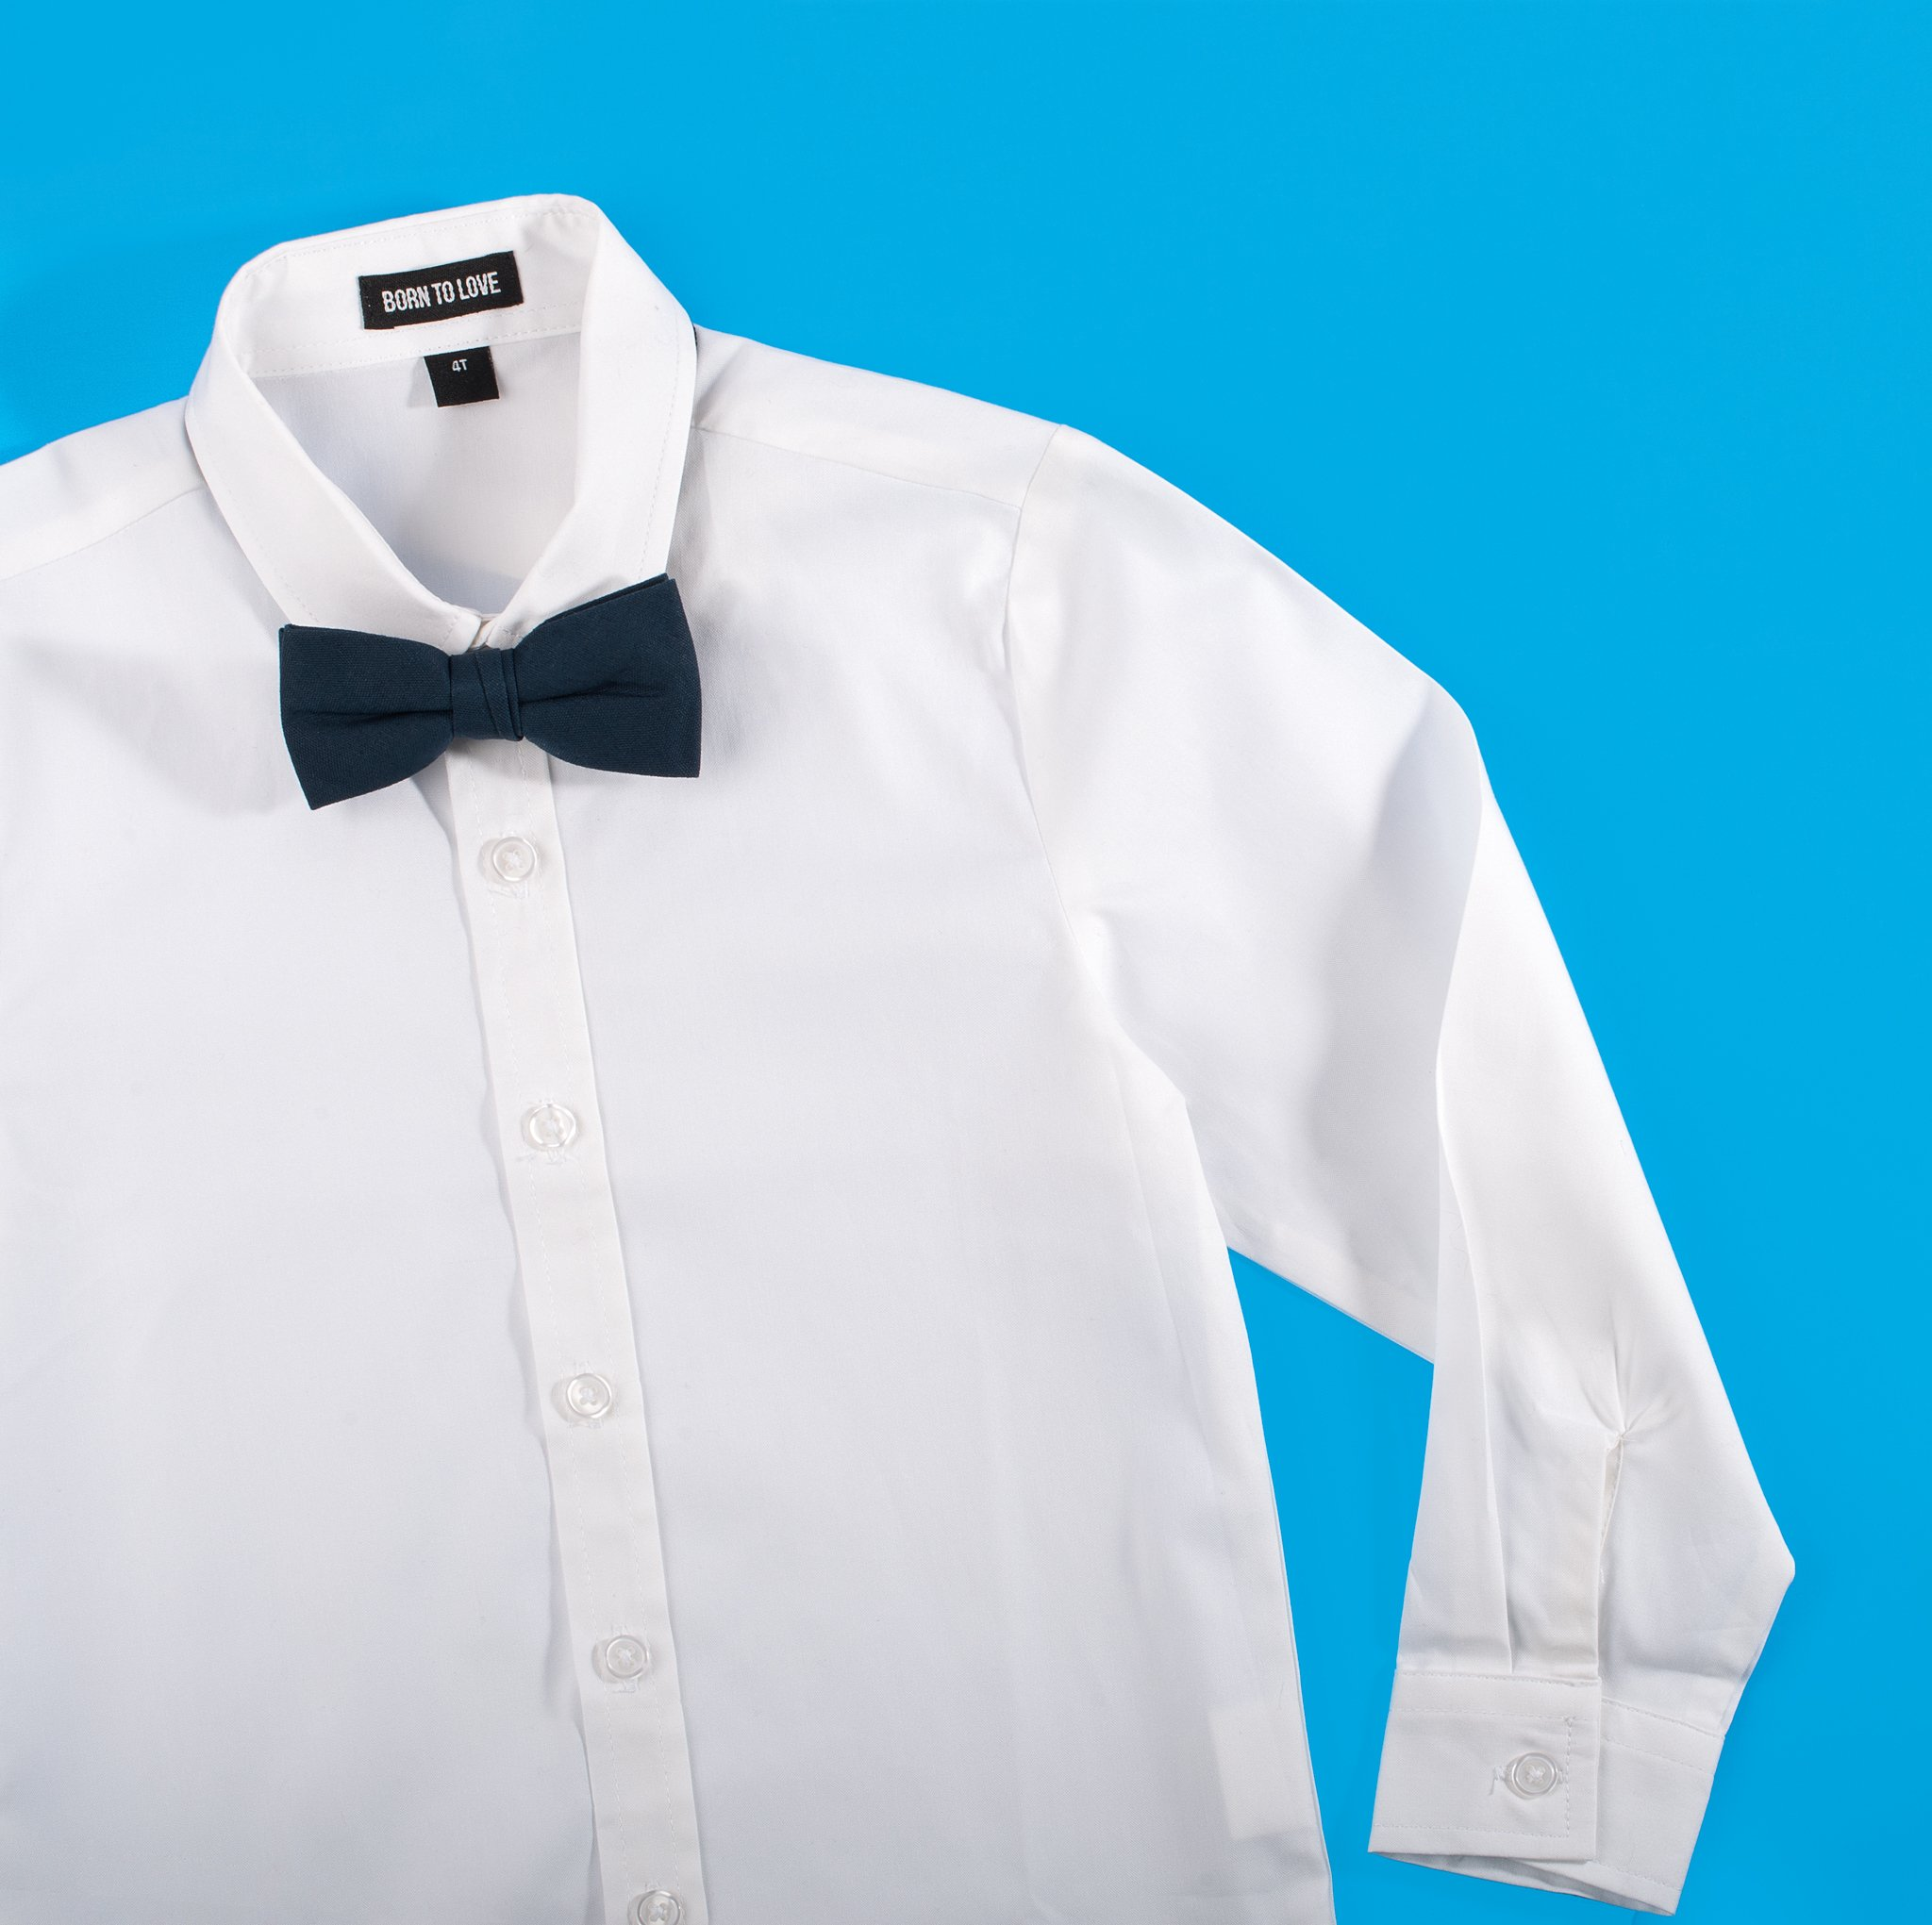 Born to Love - Wedding Baptism Birthday White Button-Up Shirt - Infant, Toddler & Boys 2T by Born to Love (Image #5)